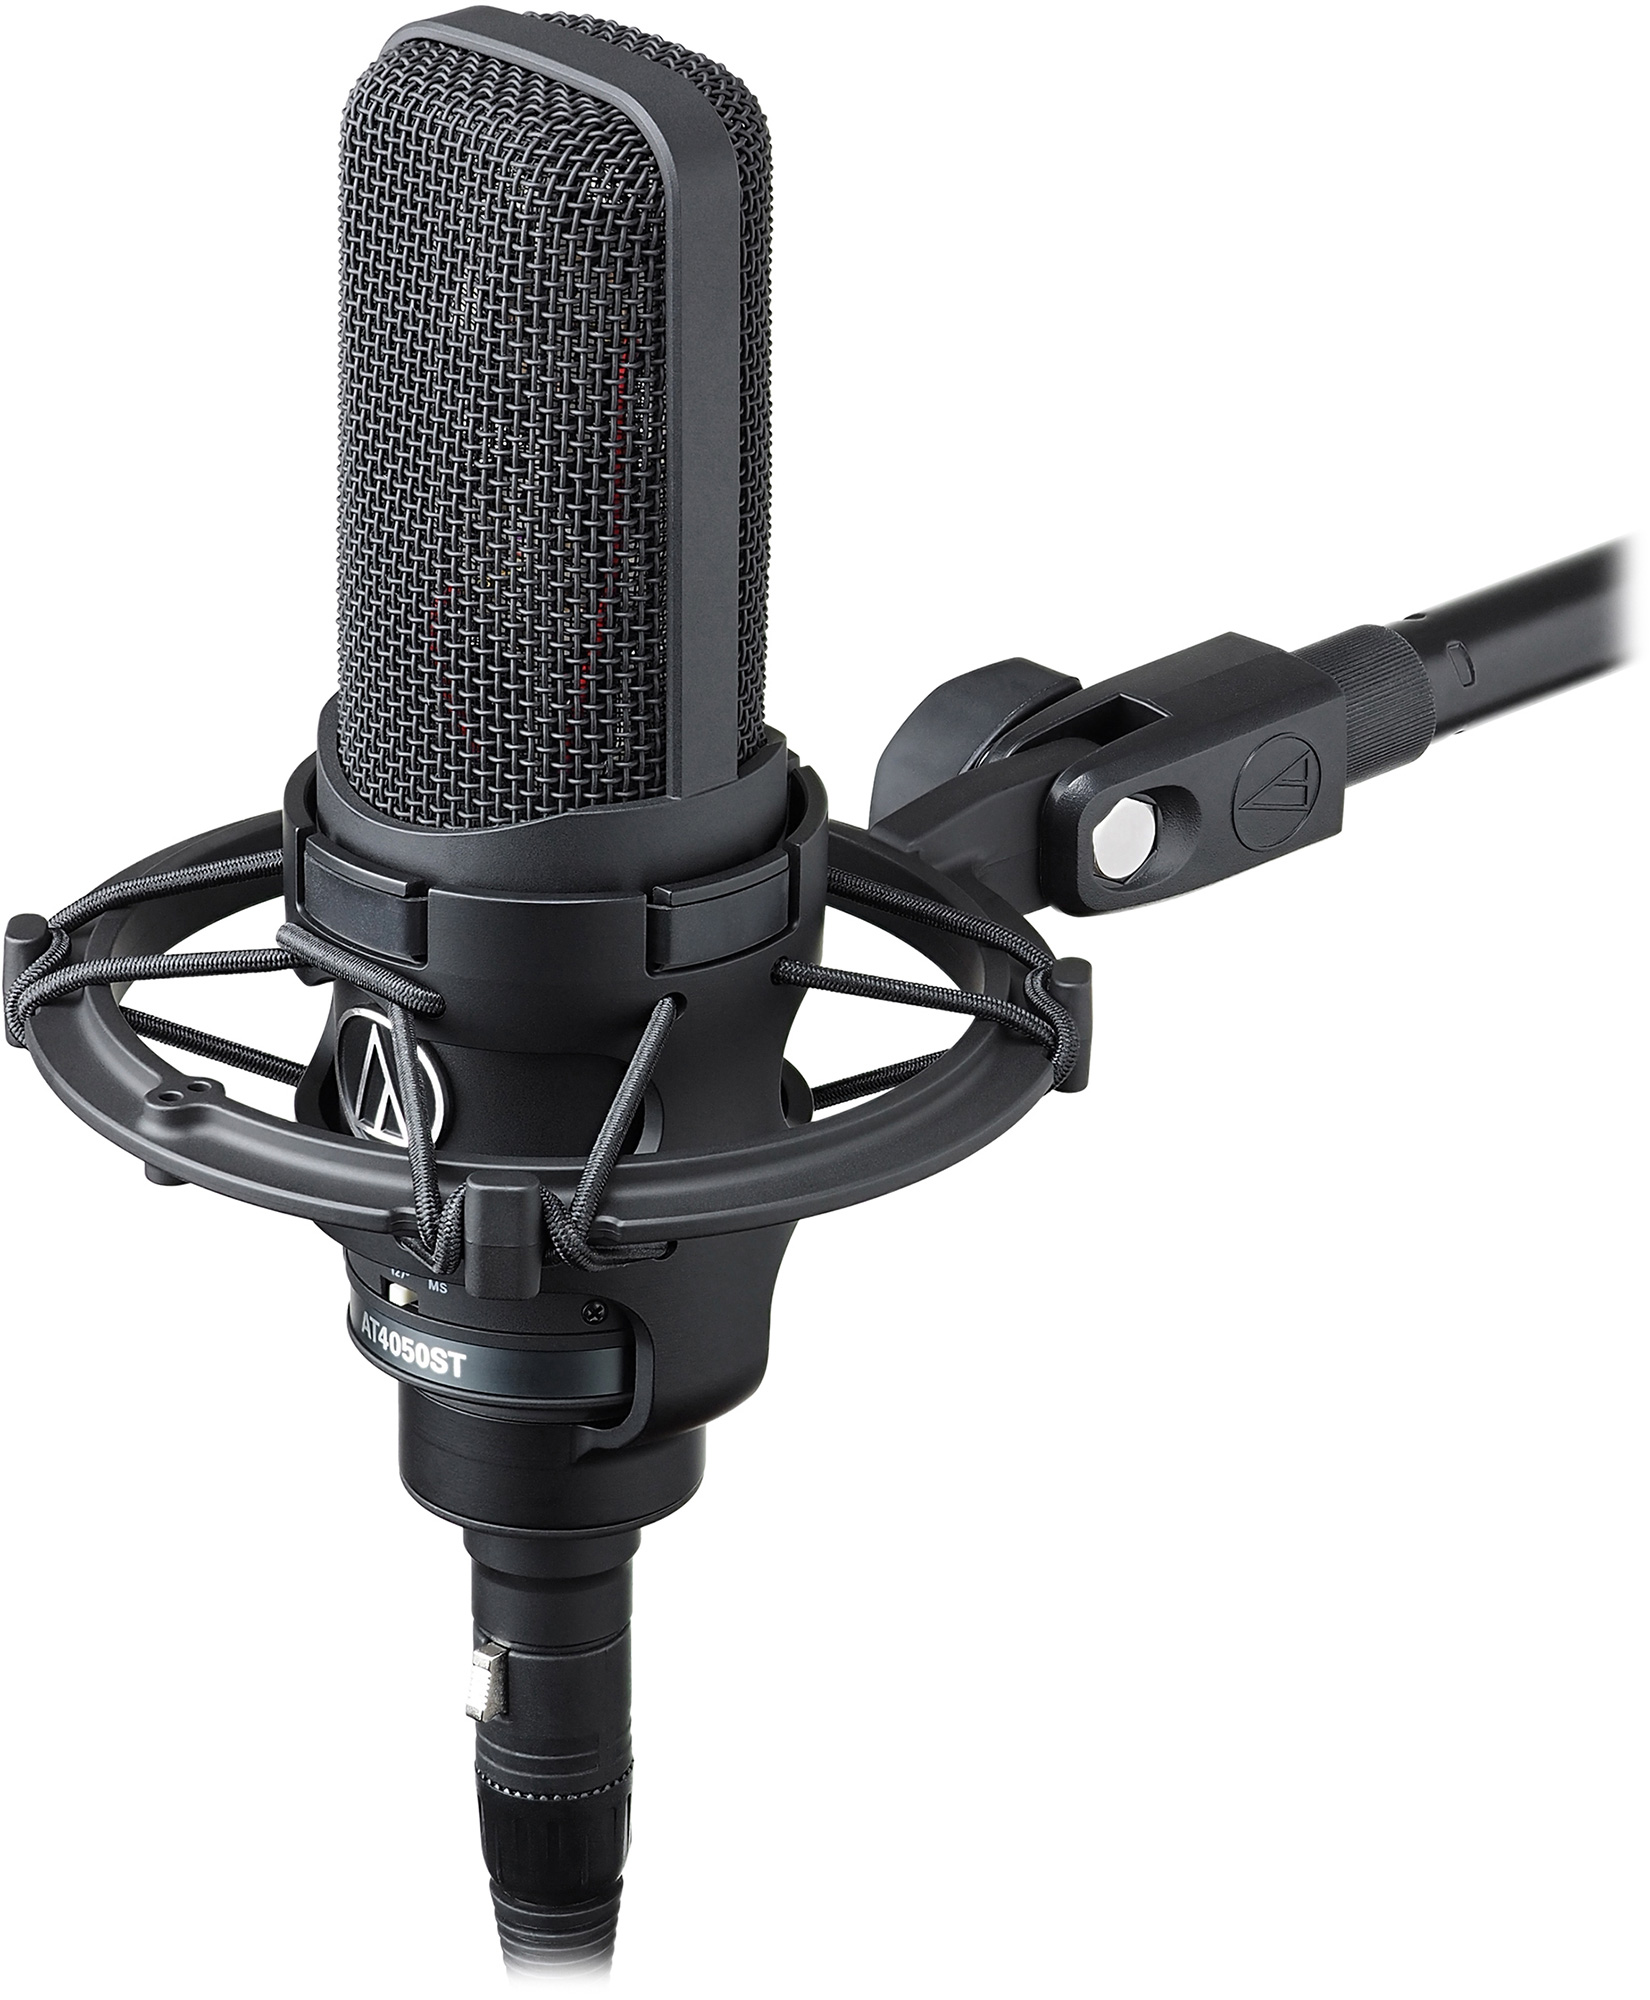 audio technica at4050st stereo condenser microphone. Black Bedroom Furniture Sets. Home Design Ideas